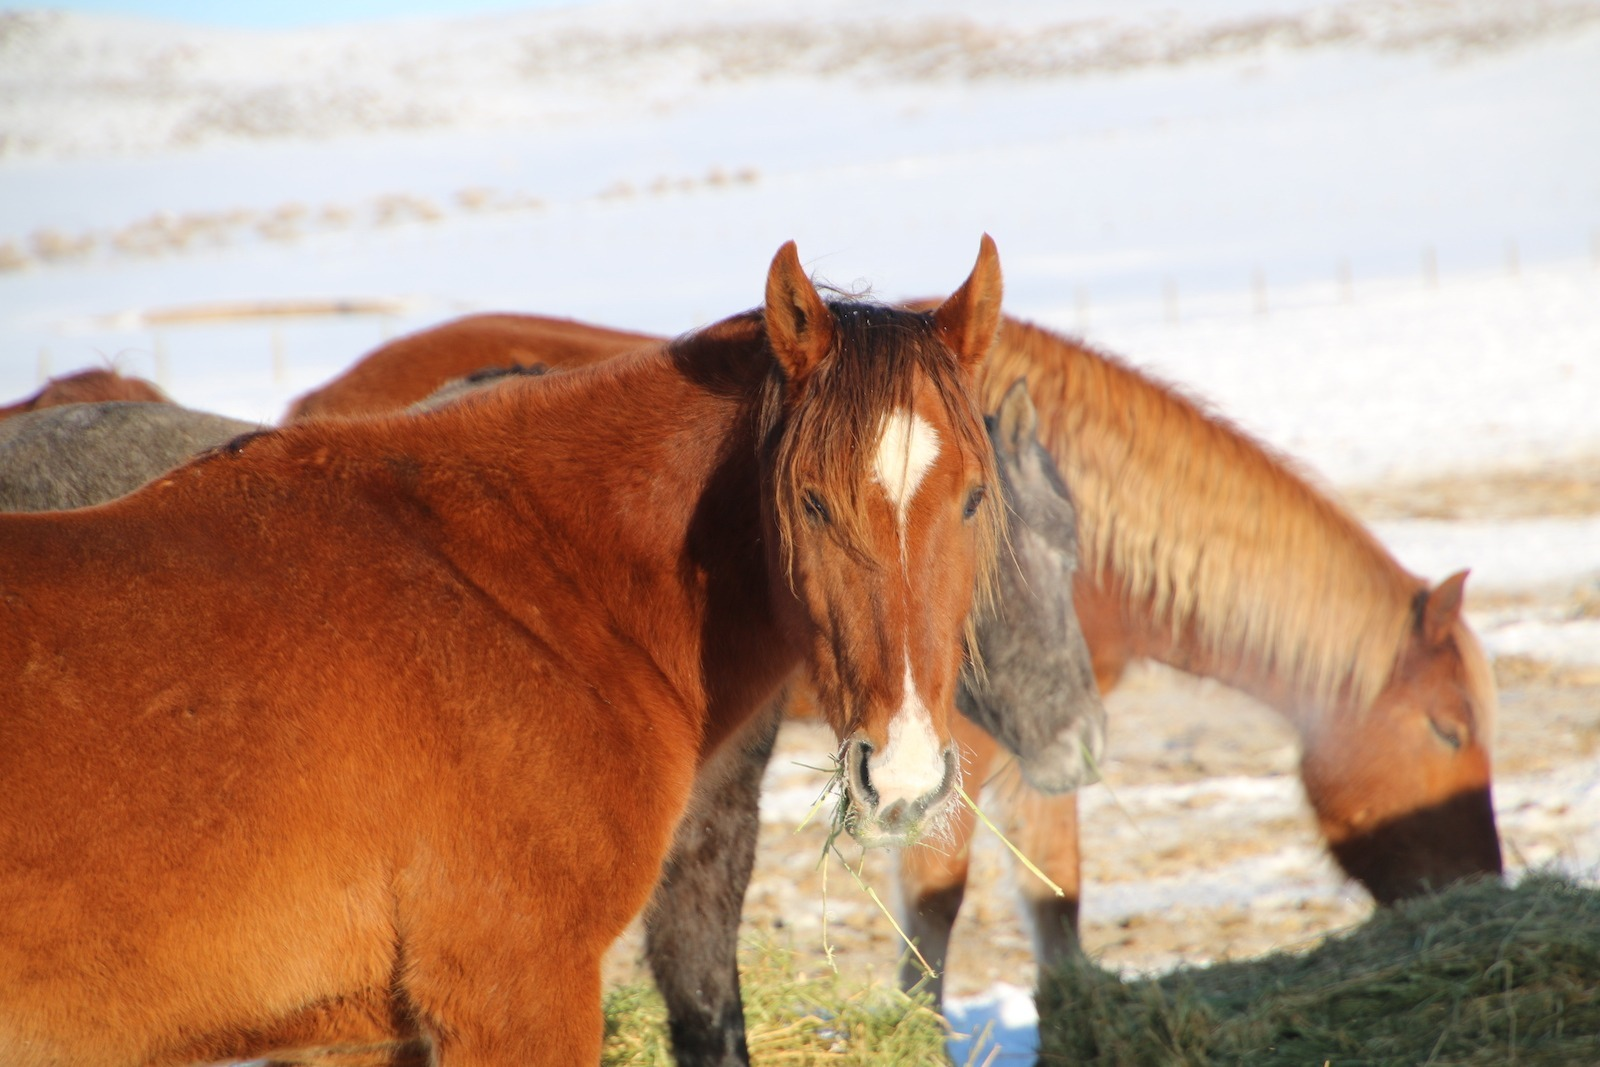 Mustangs at the Wind River Wild Horse Sanctuary